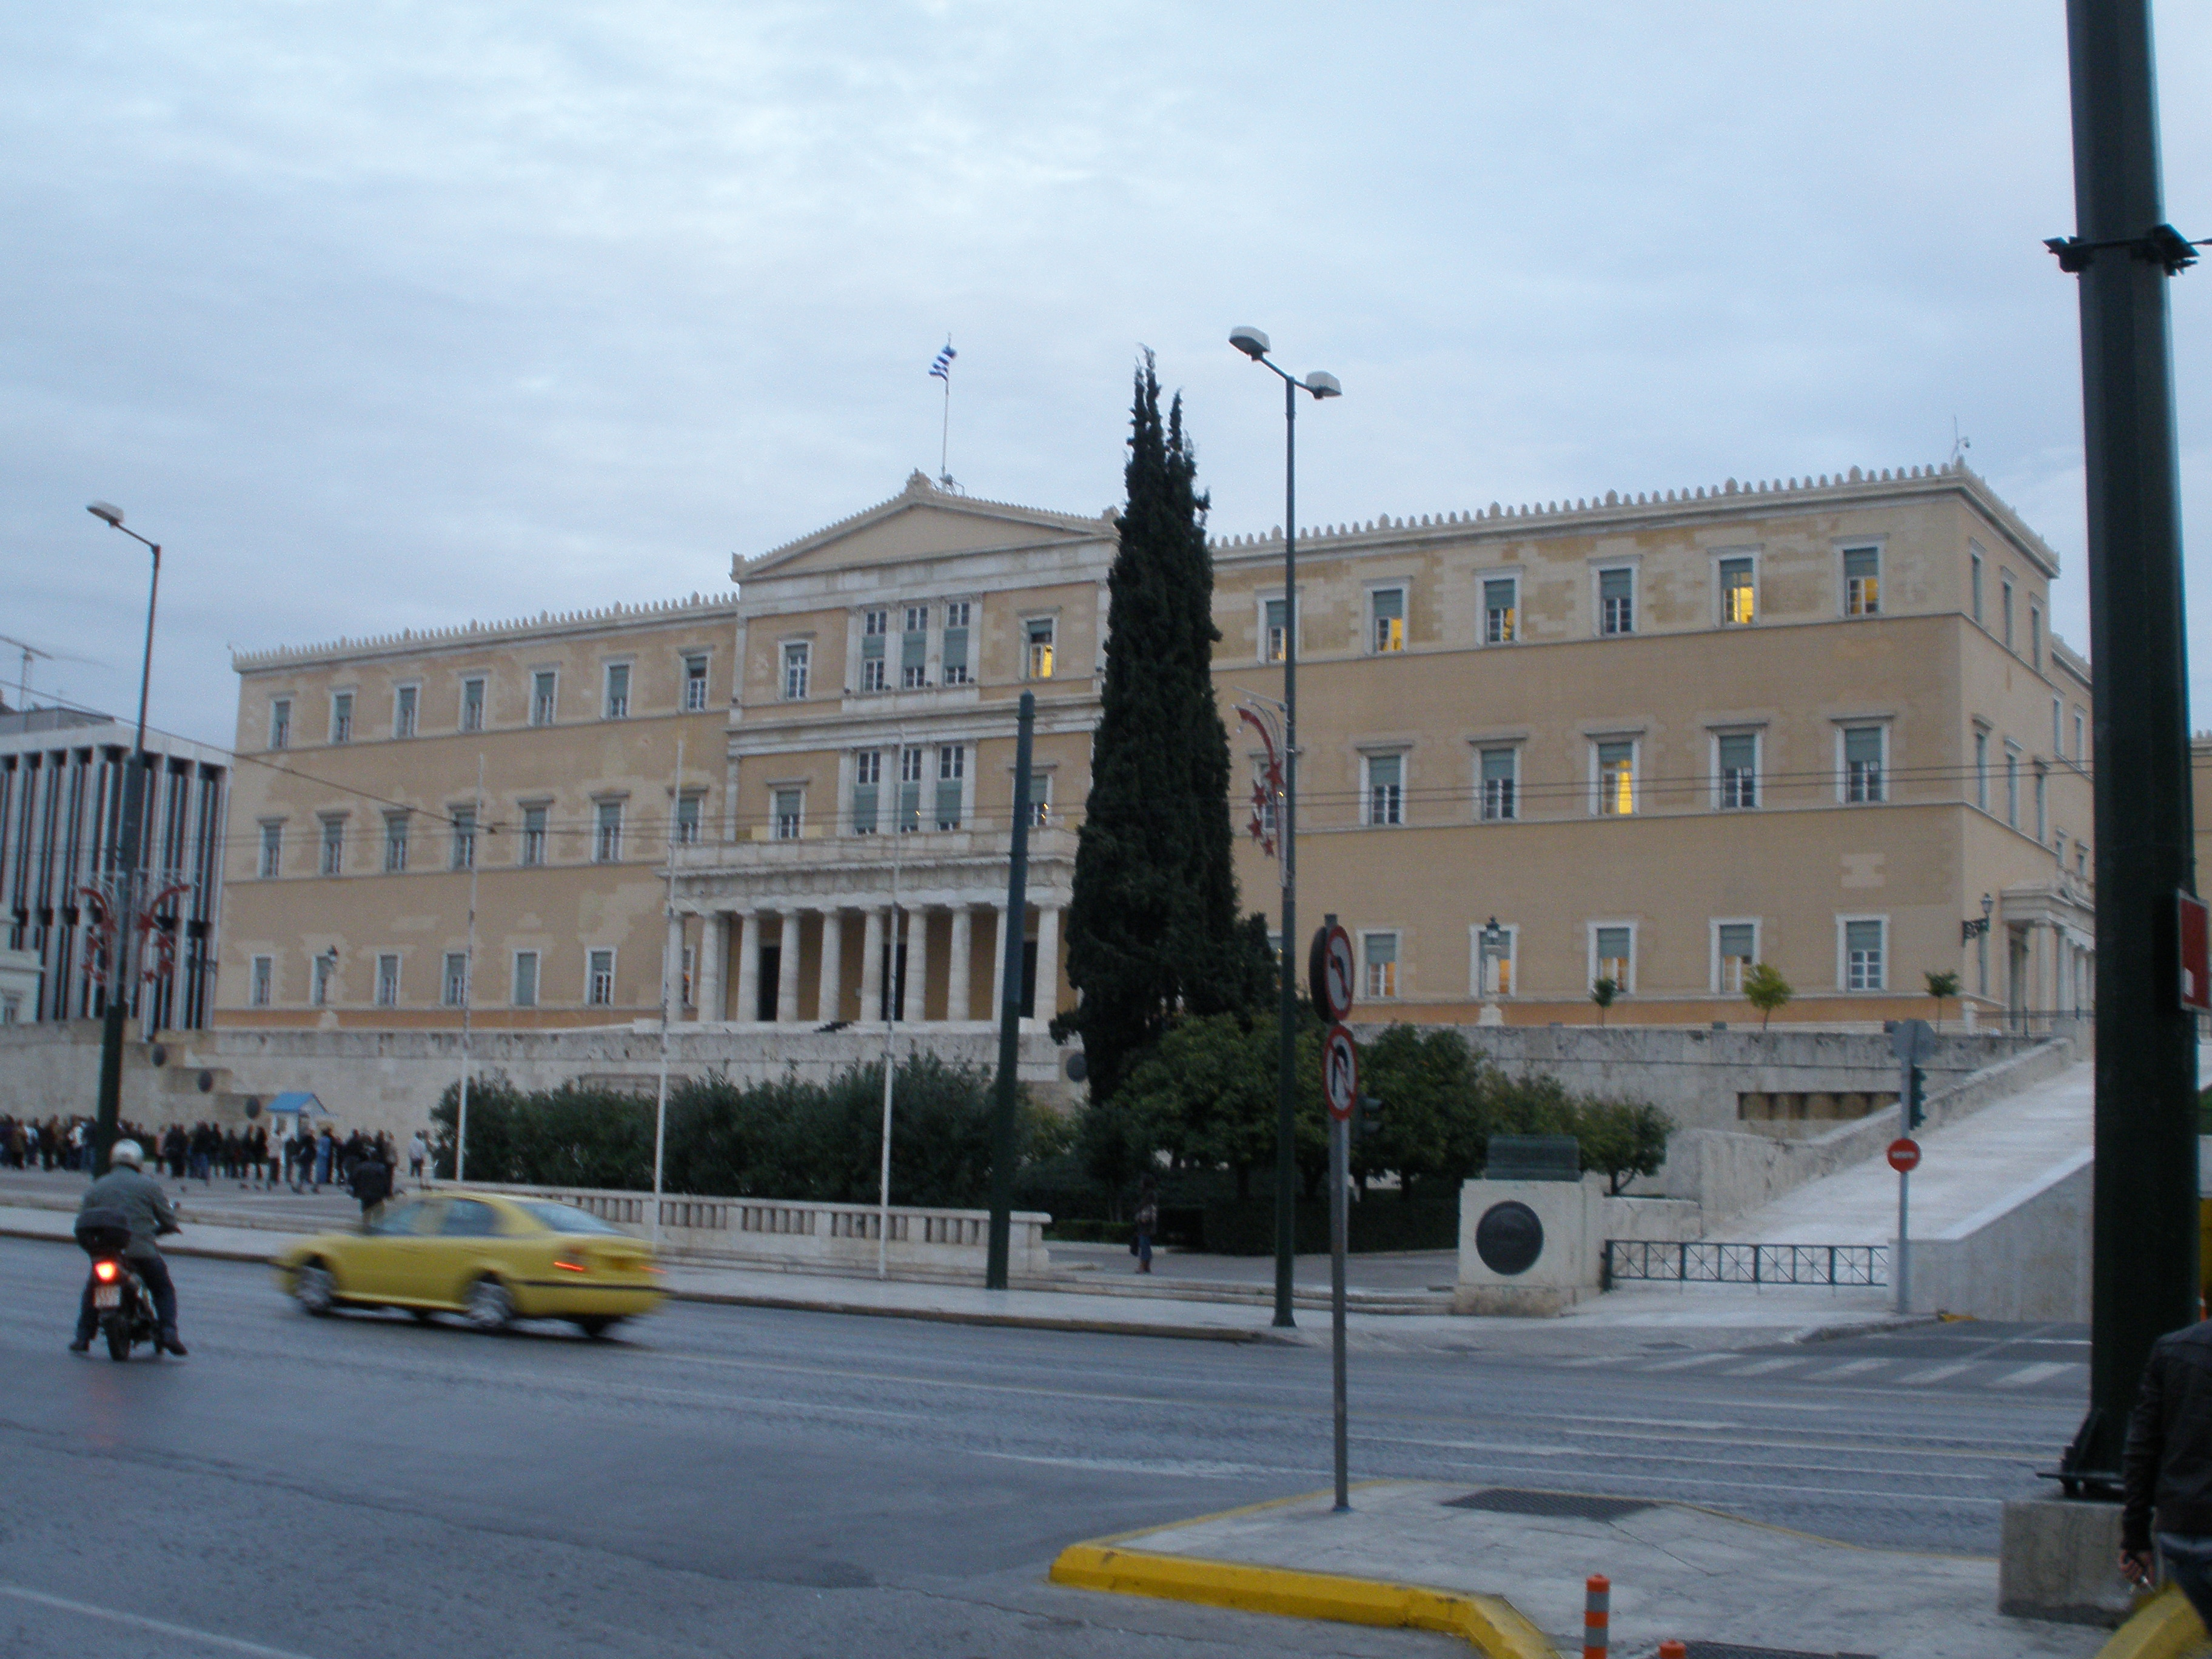 parlement in Athene, griekenland in crisis